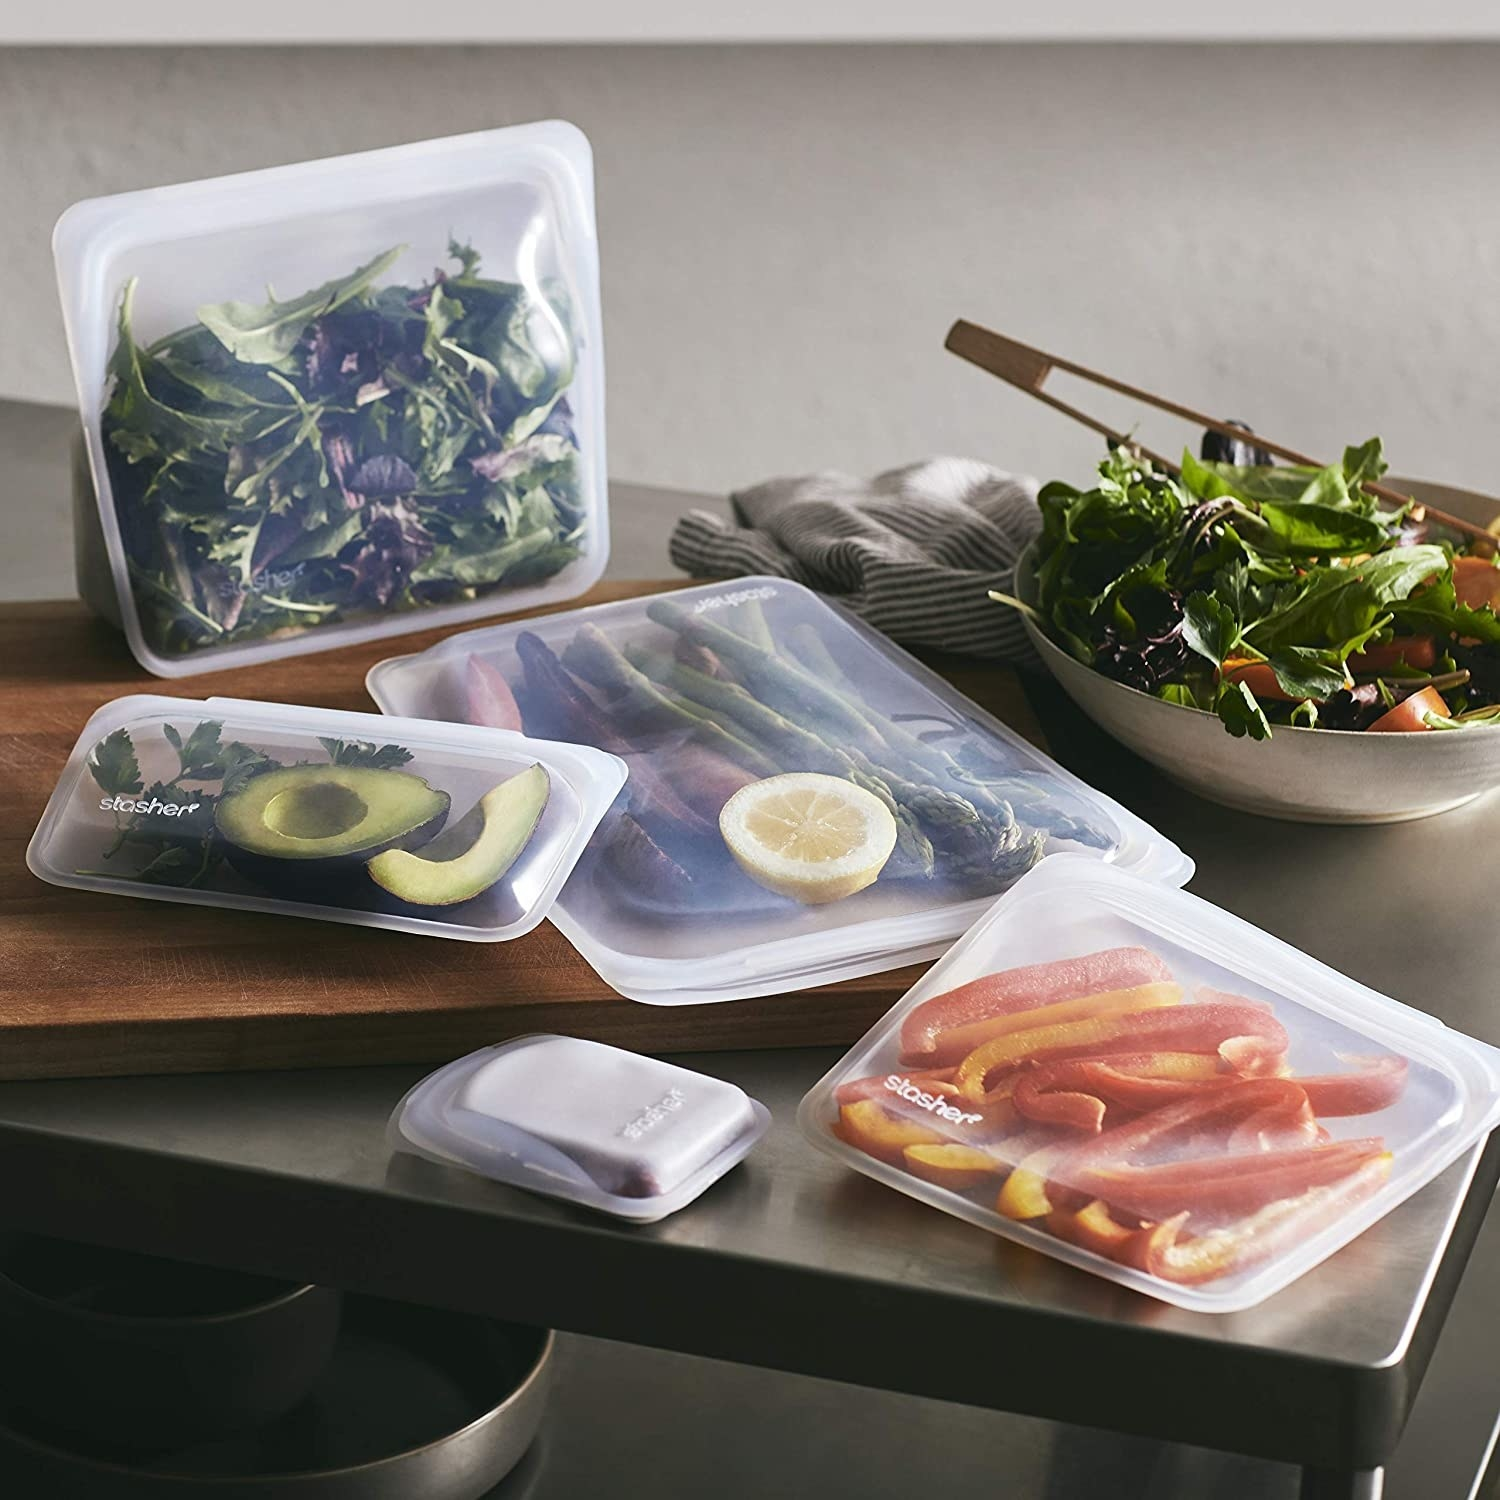 The silicone bags in various sizes holding food